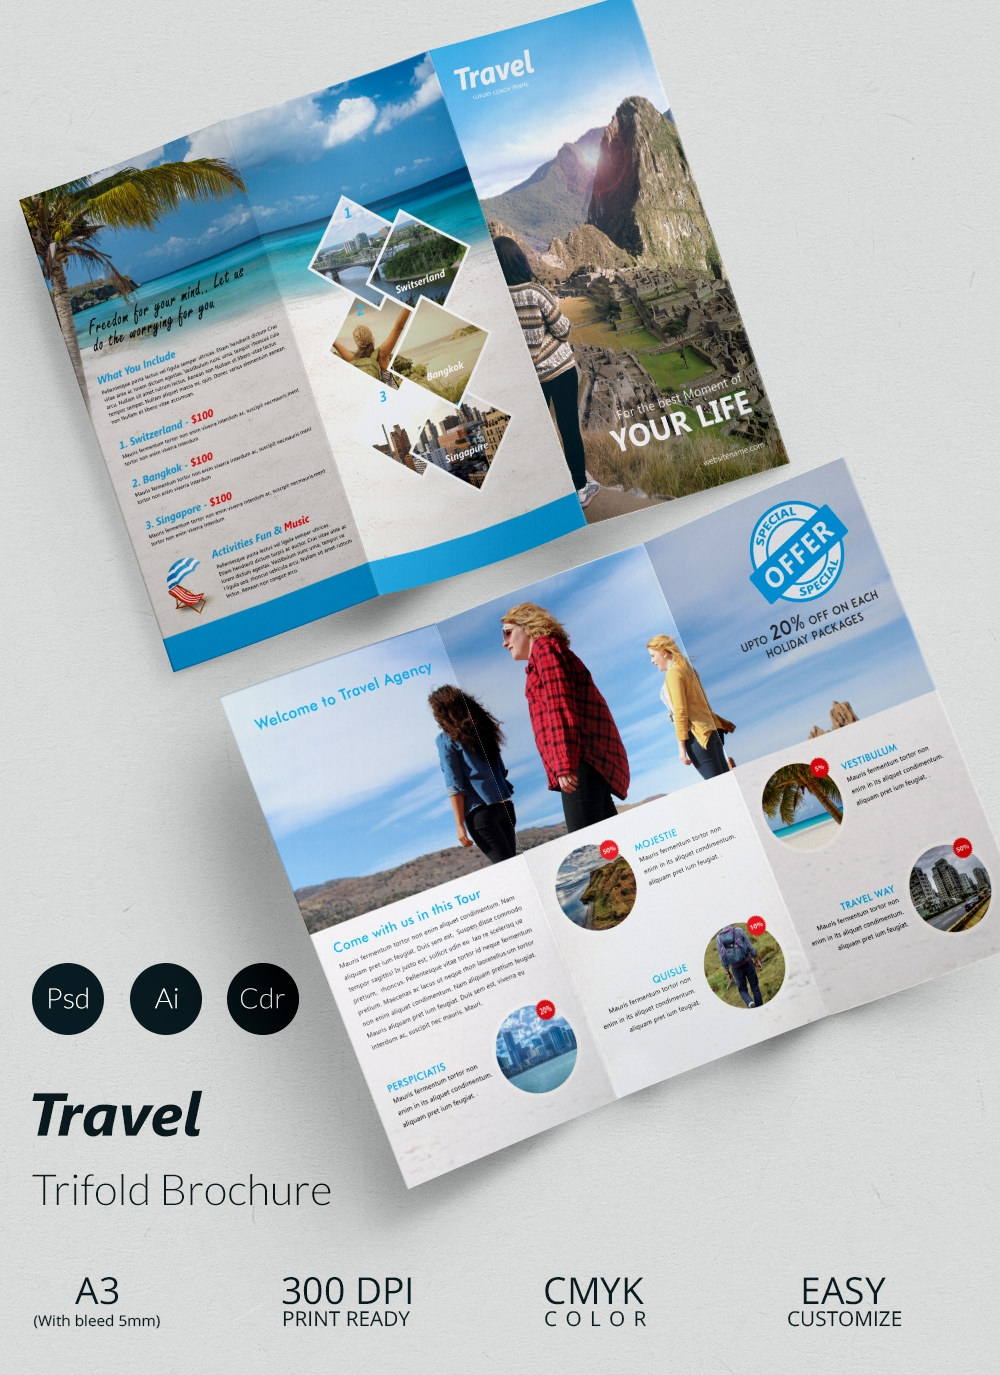 Travel brochure templates 21 download in psd vector for Travel brochure design templates